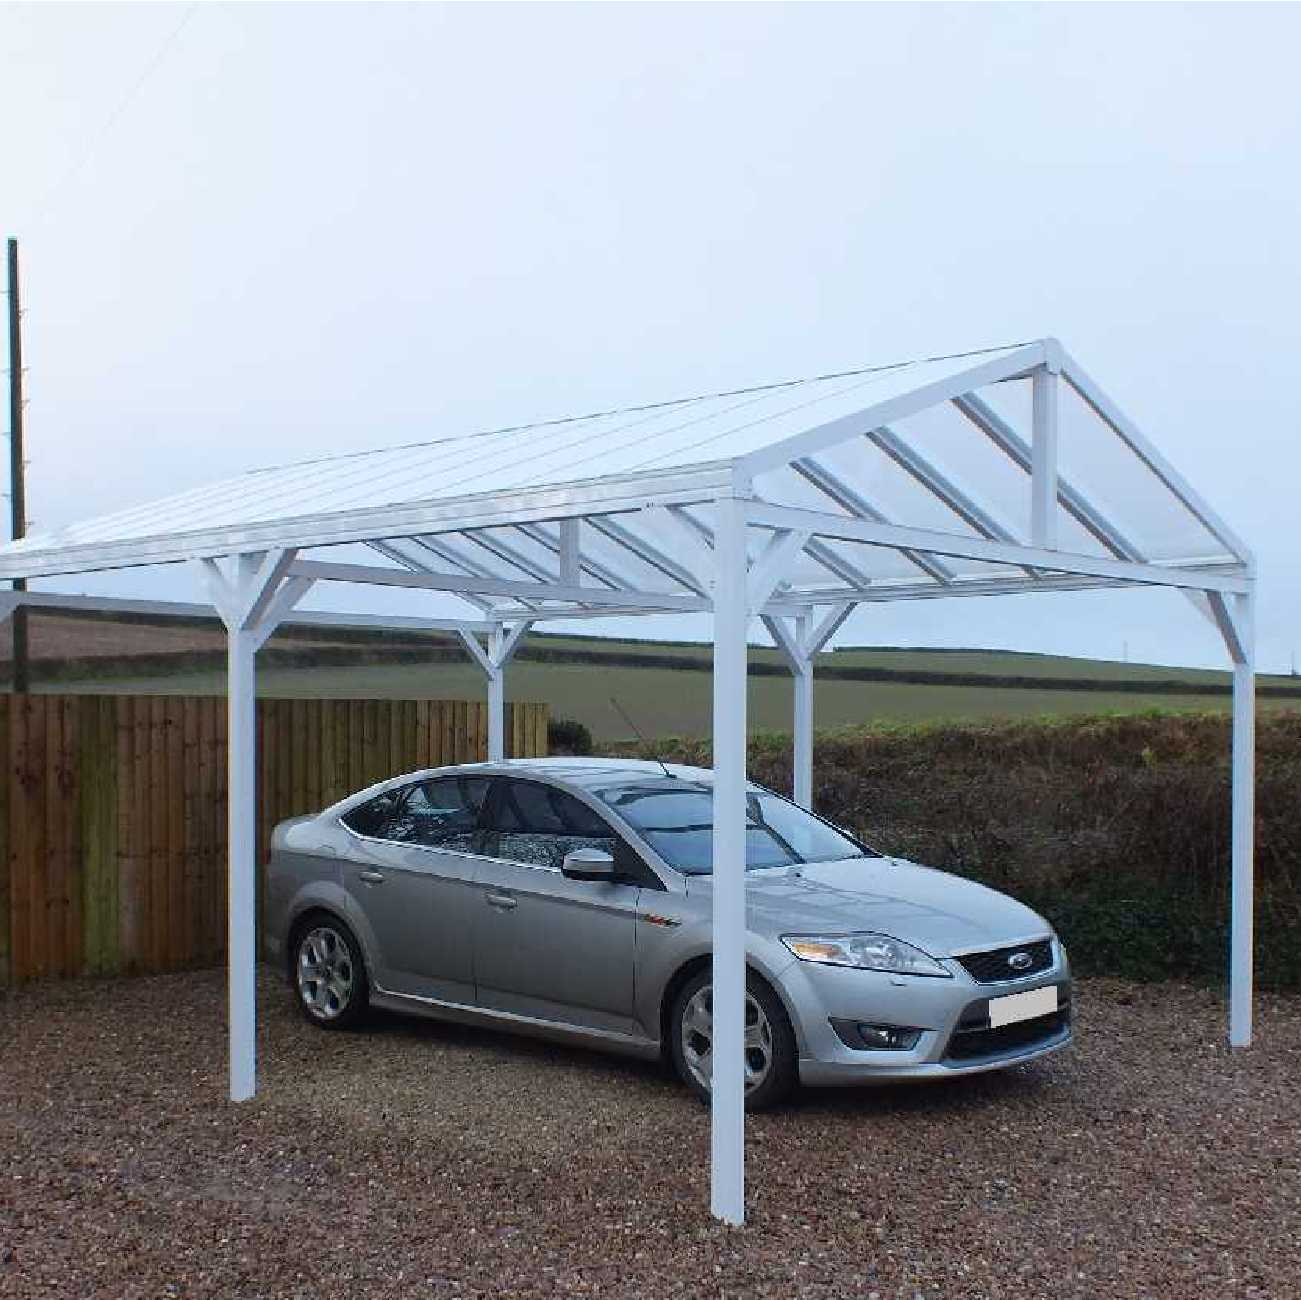 Affordable Omega Smart Free-Standing, Gable-Roof (type 1) Canopy with 16mm Polycarbonate Glazing - 6.3m (W) x 3.5m (P), (8) Supporting Posts